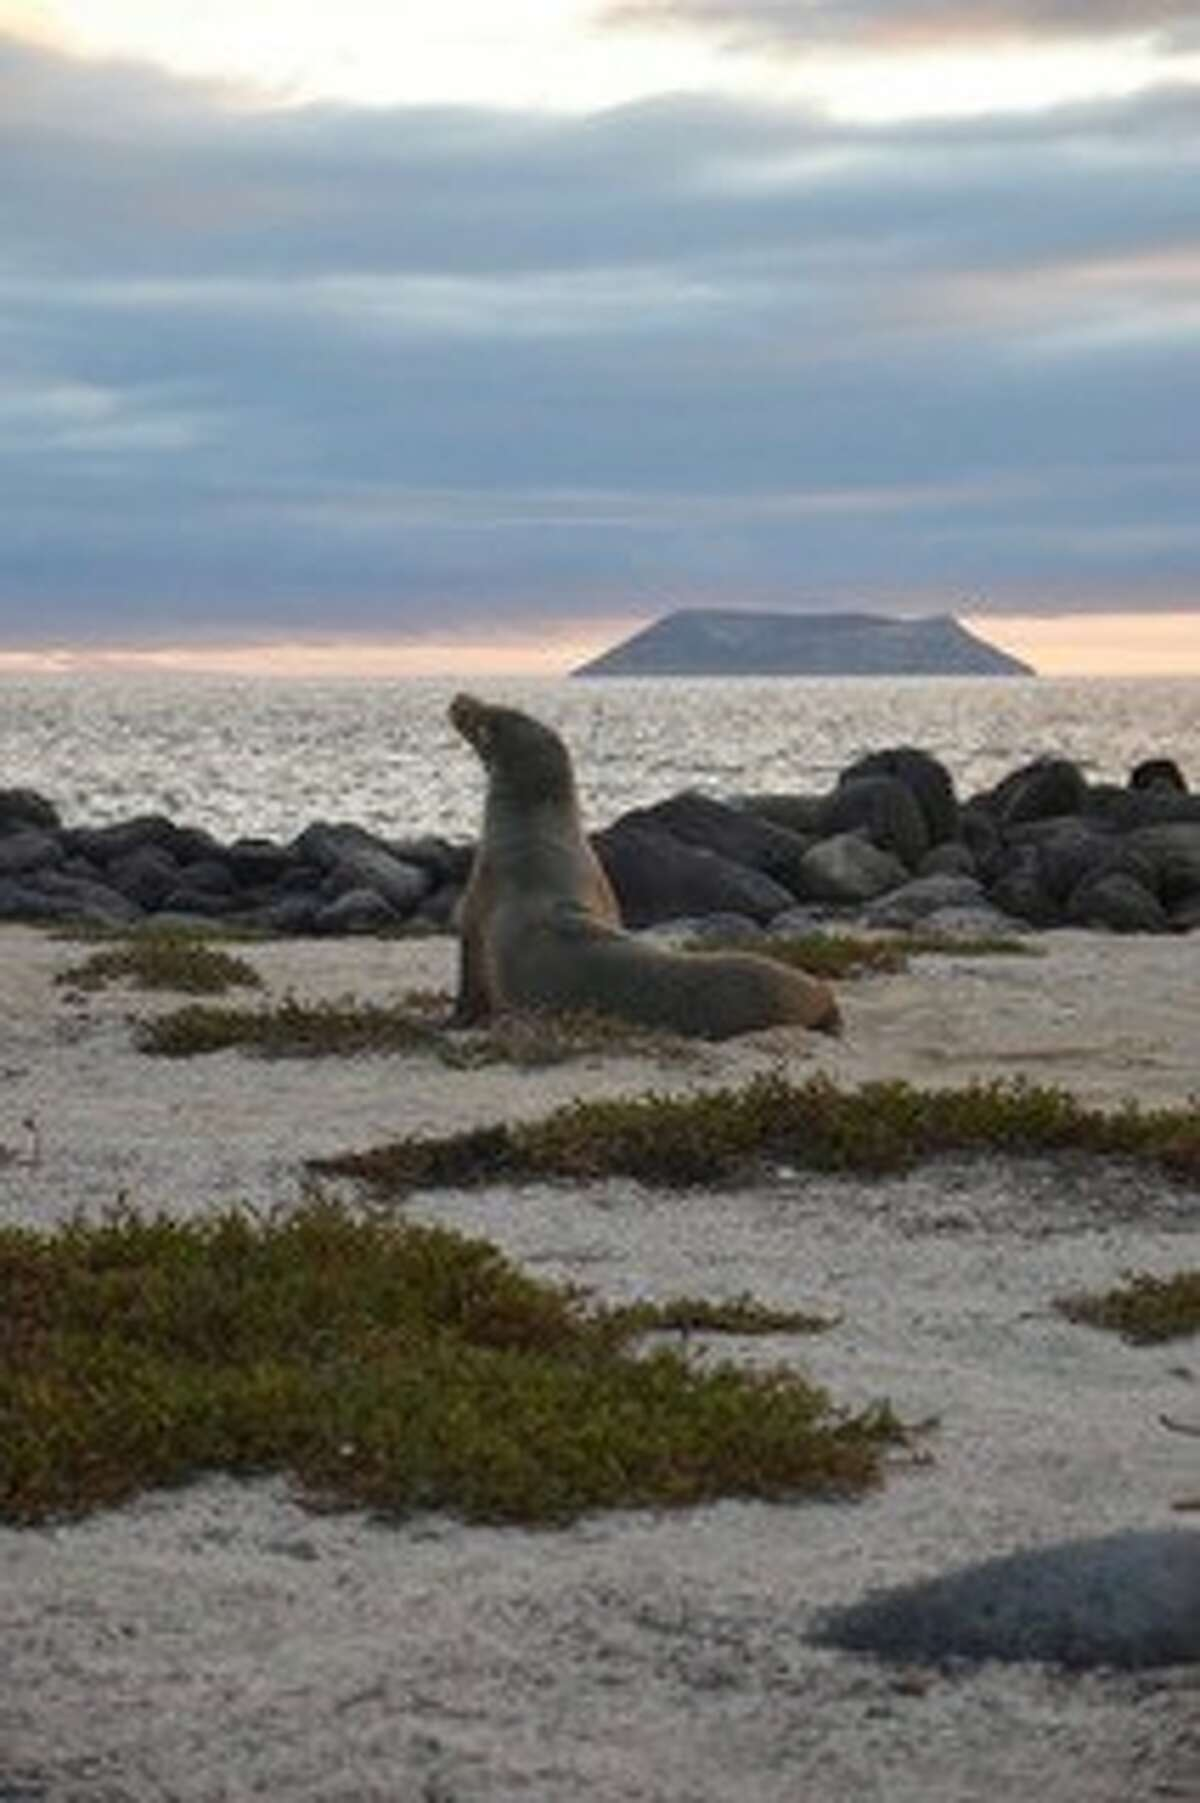 Stephen Pratt, Niskayuna: This photo of a sea lion posing on the shore of North Seymour in the Galapagos Islands, Ecuador, was taken in August.